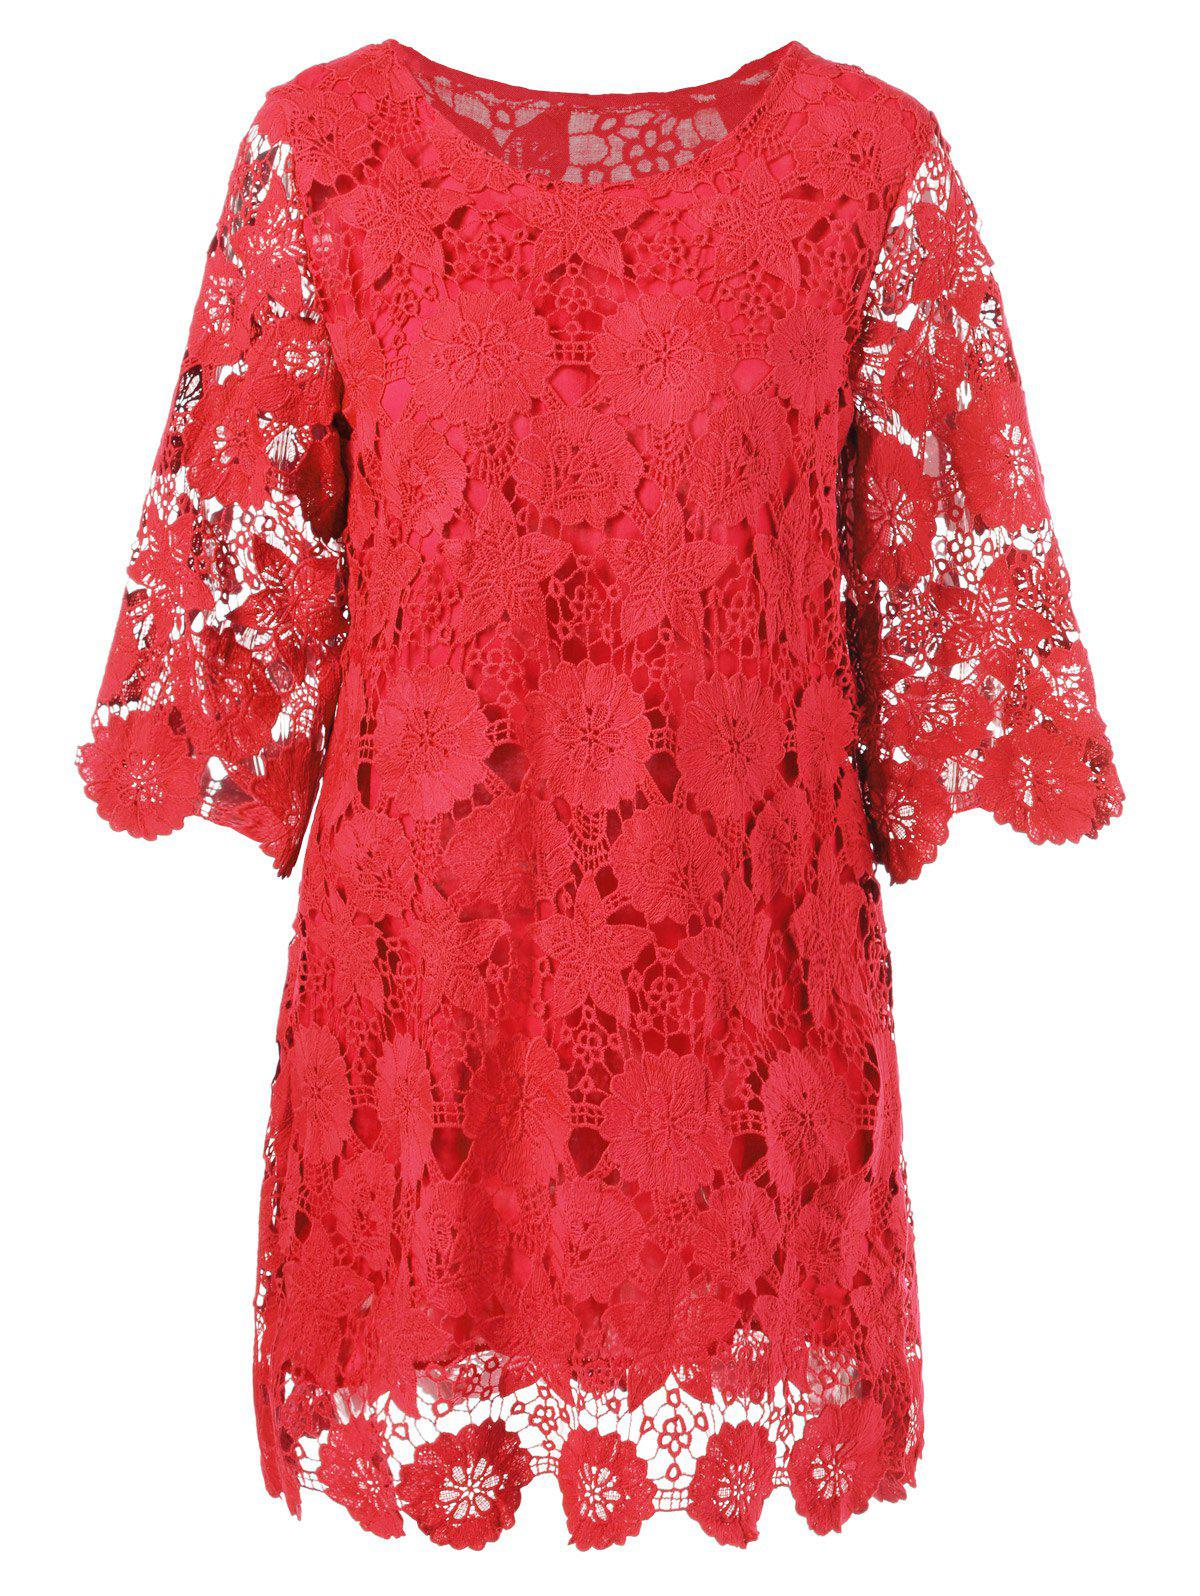 Lace Floral Sheer Shift Cocktail Dress - RED 2XL